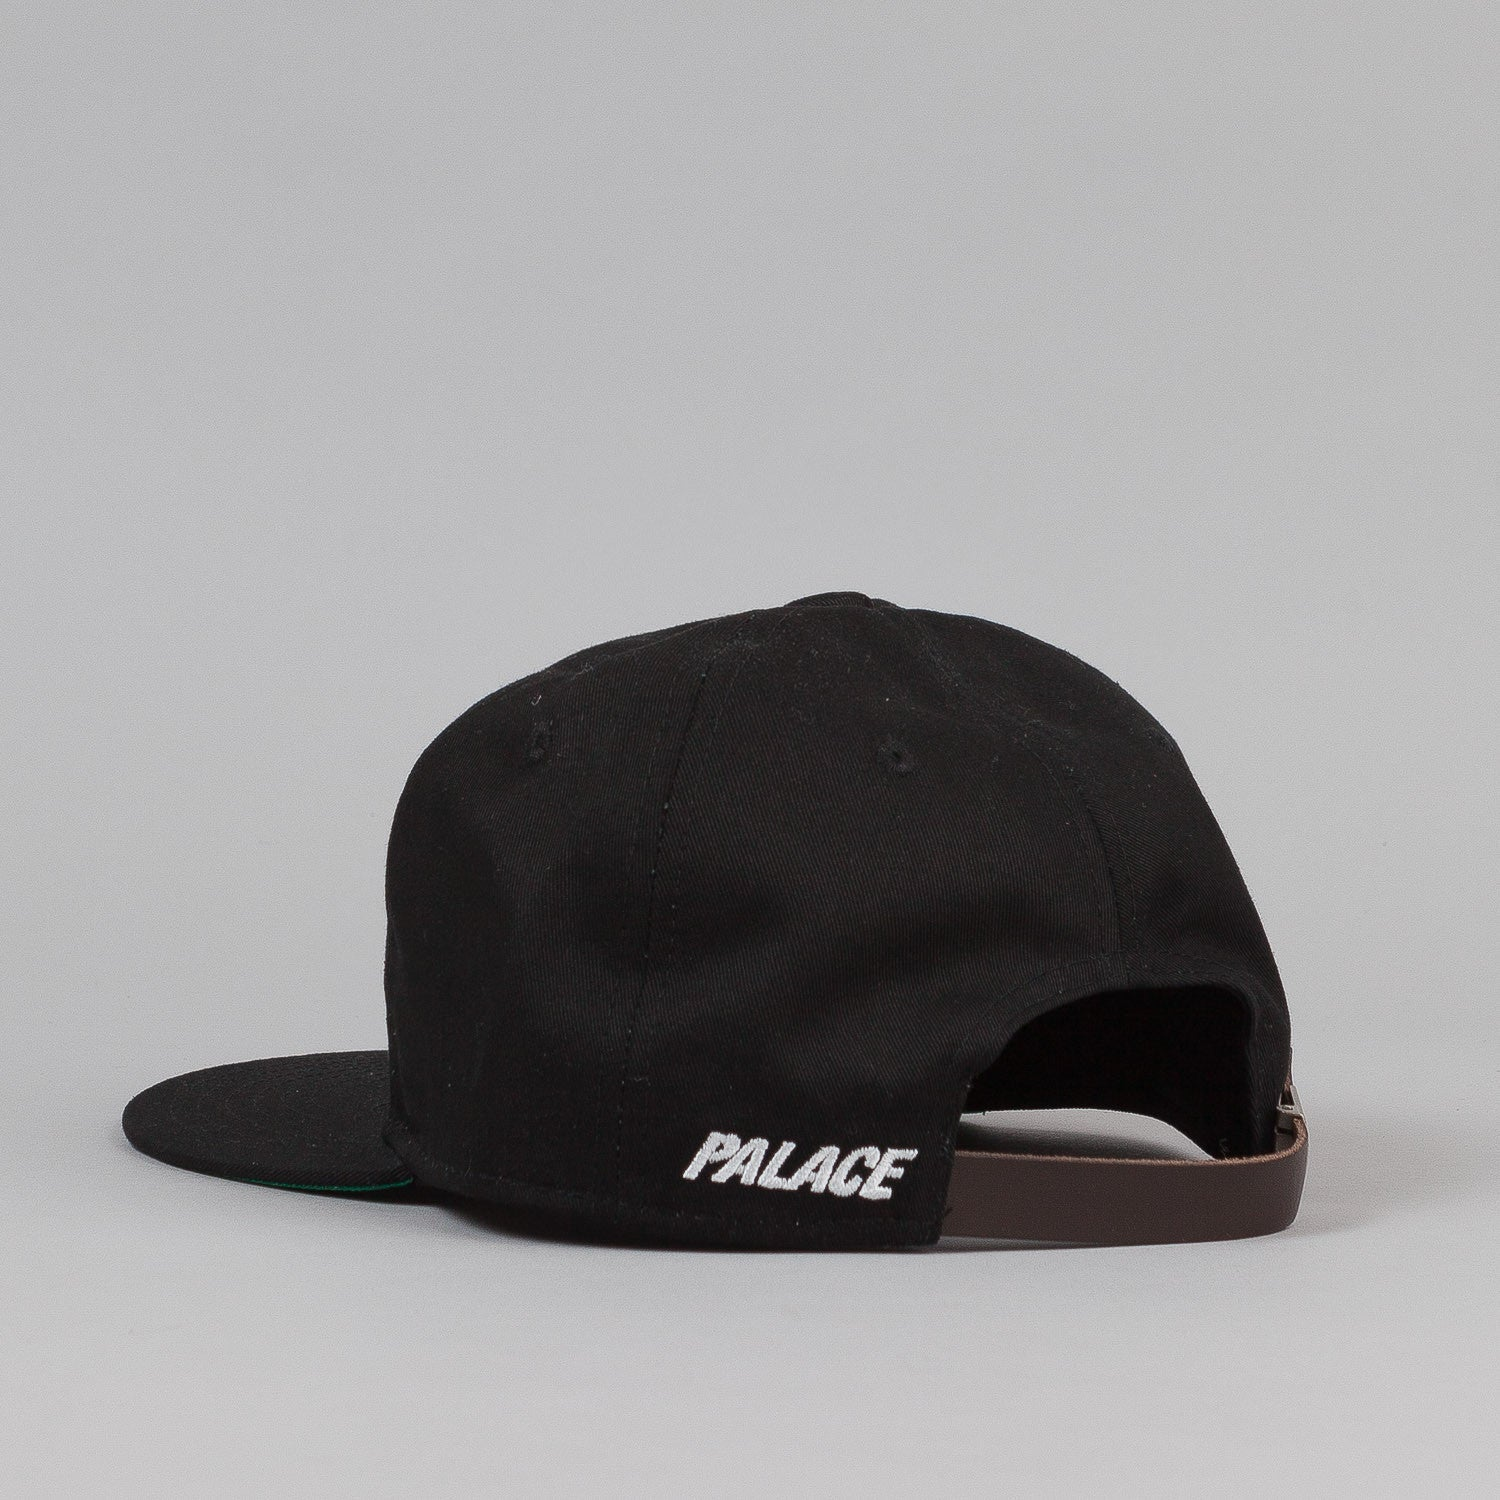 Palace 6 Panel Cap - Black